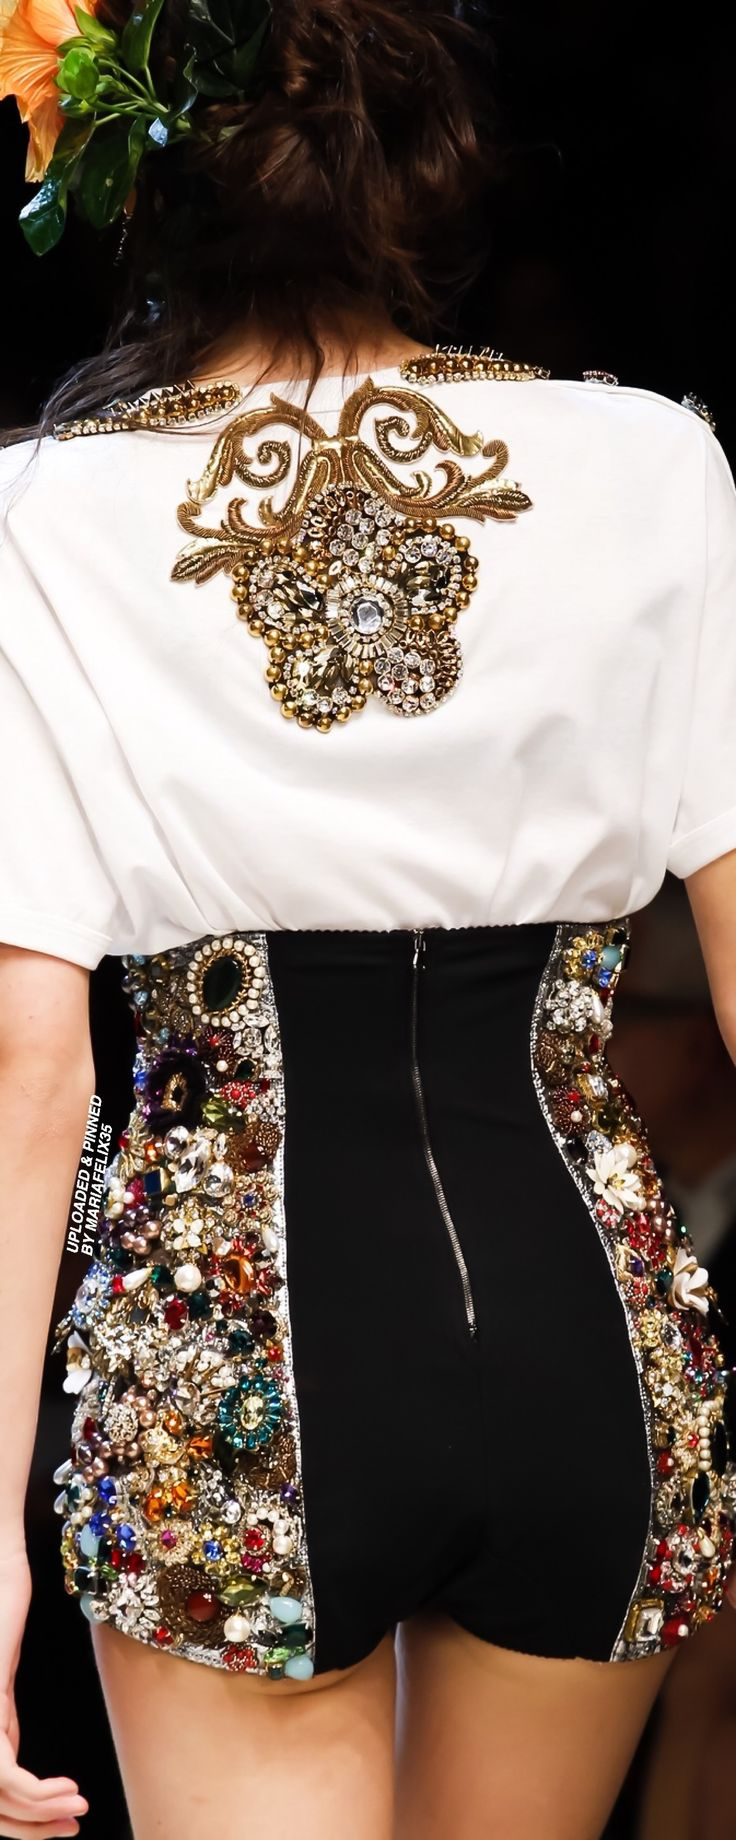 Dolce & Gabbana Spring-2017 Ready To Wear Collection Details